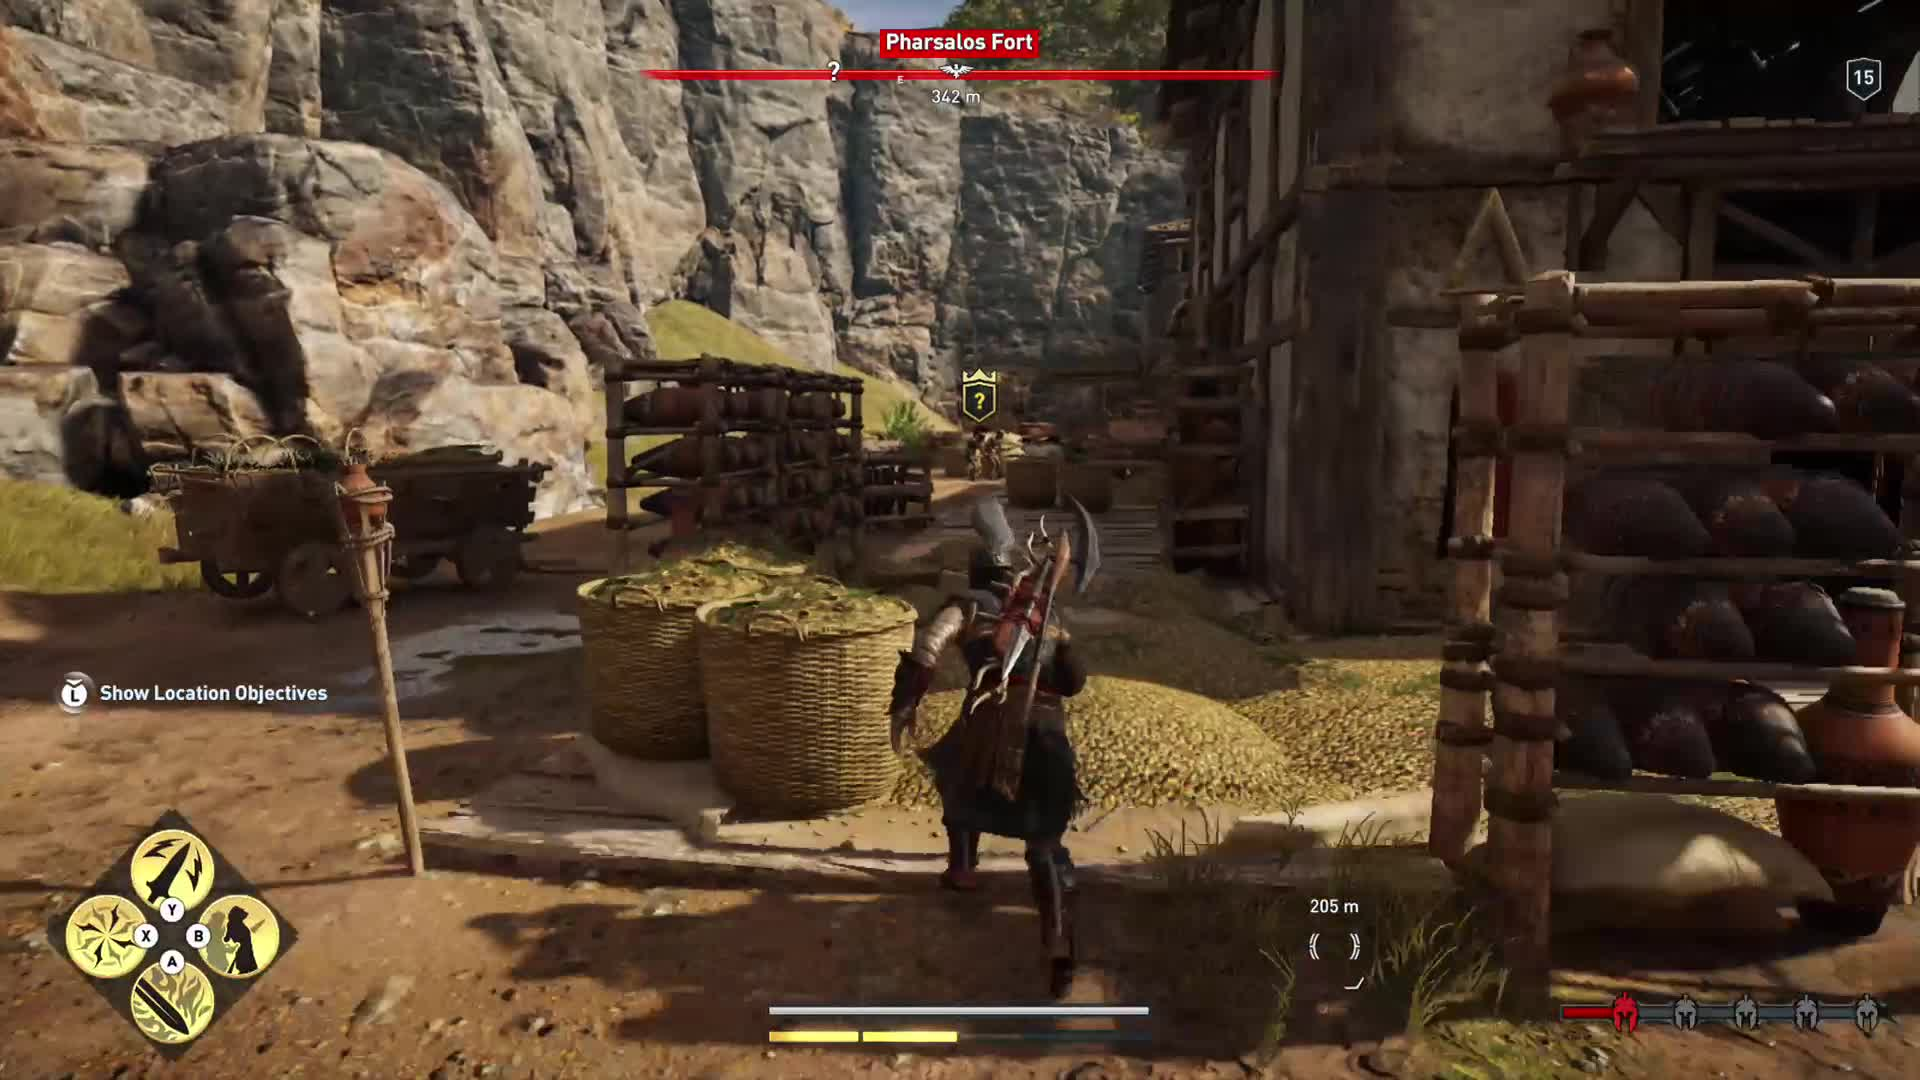 AssassinsCreedOdyssey, Lord Kreptyne, xbox, xbox dvr, xbox one, Satisfying GIFs